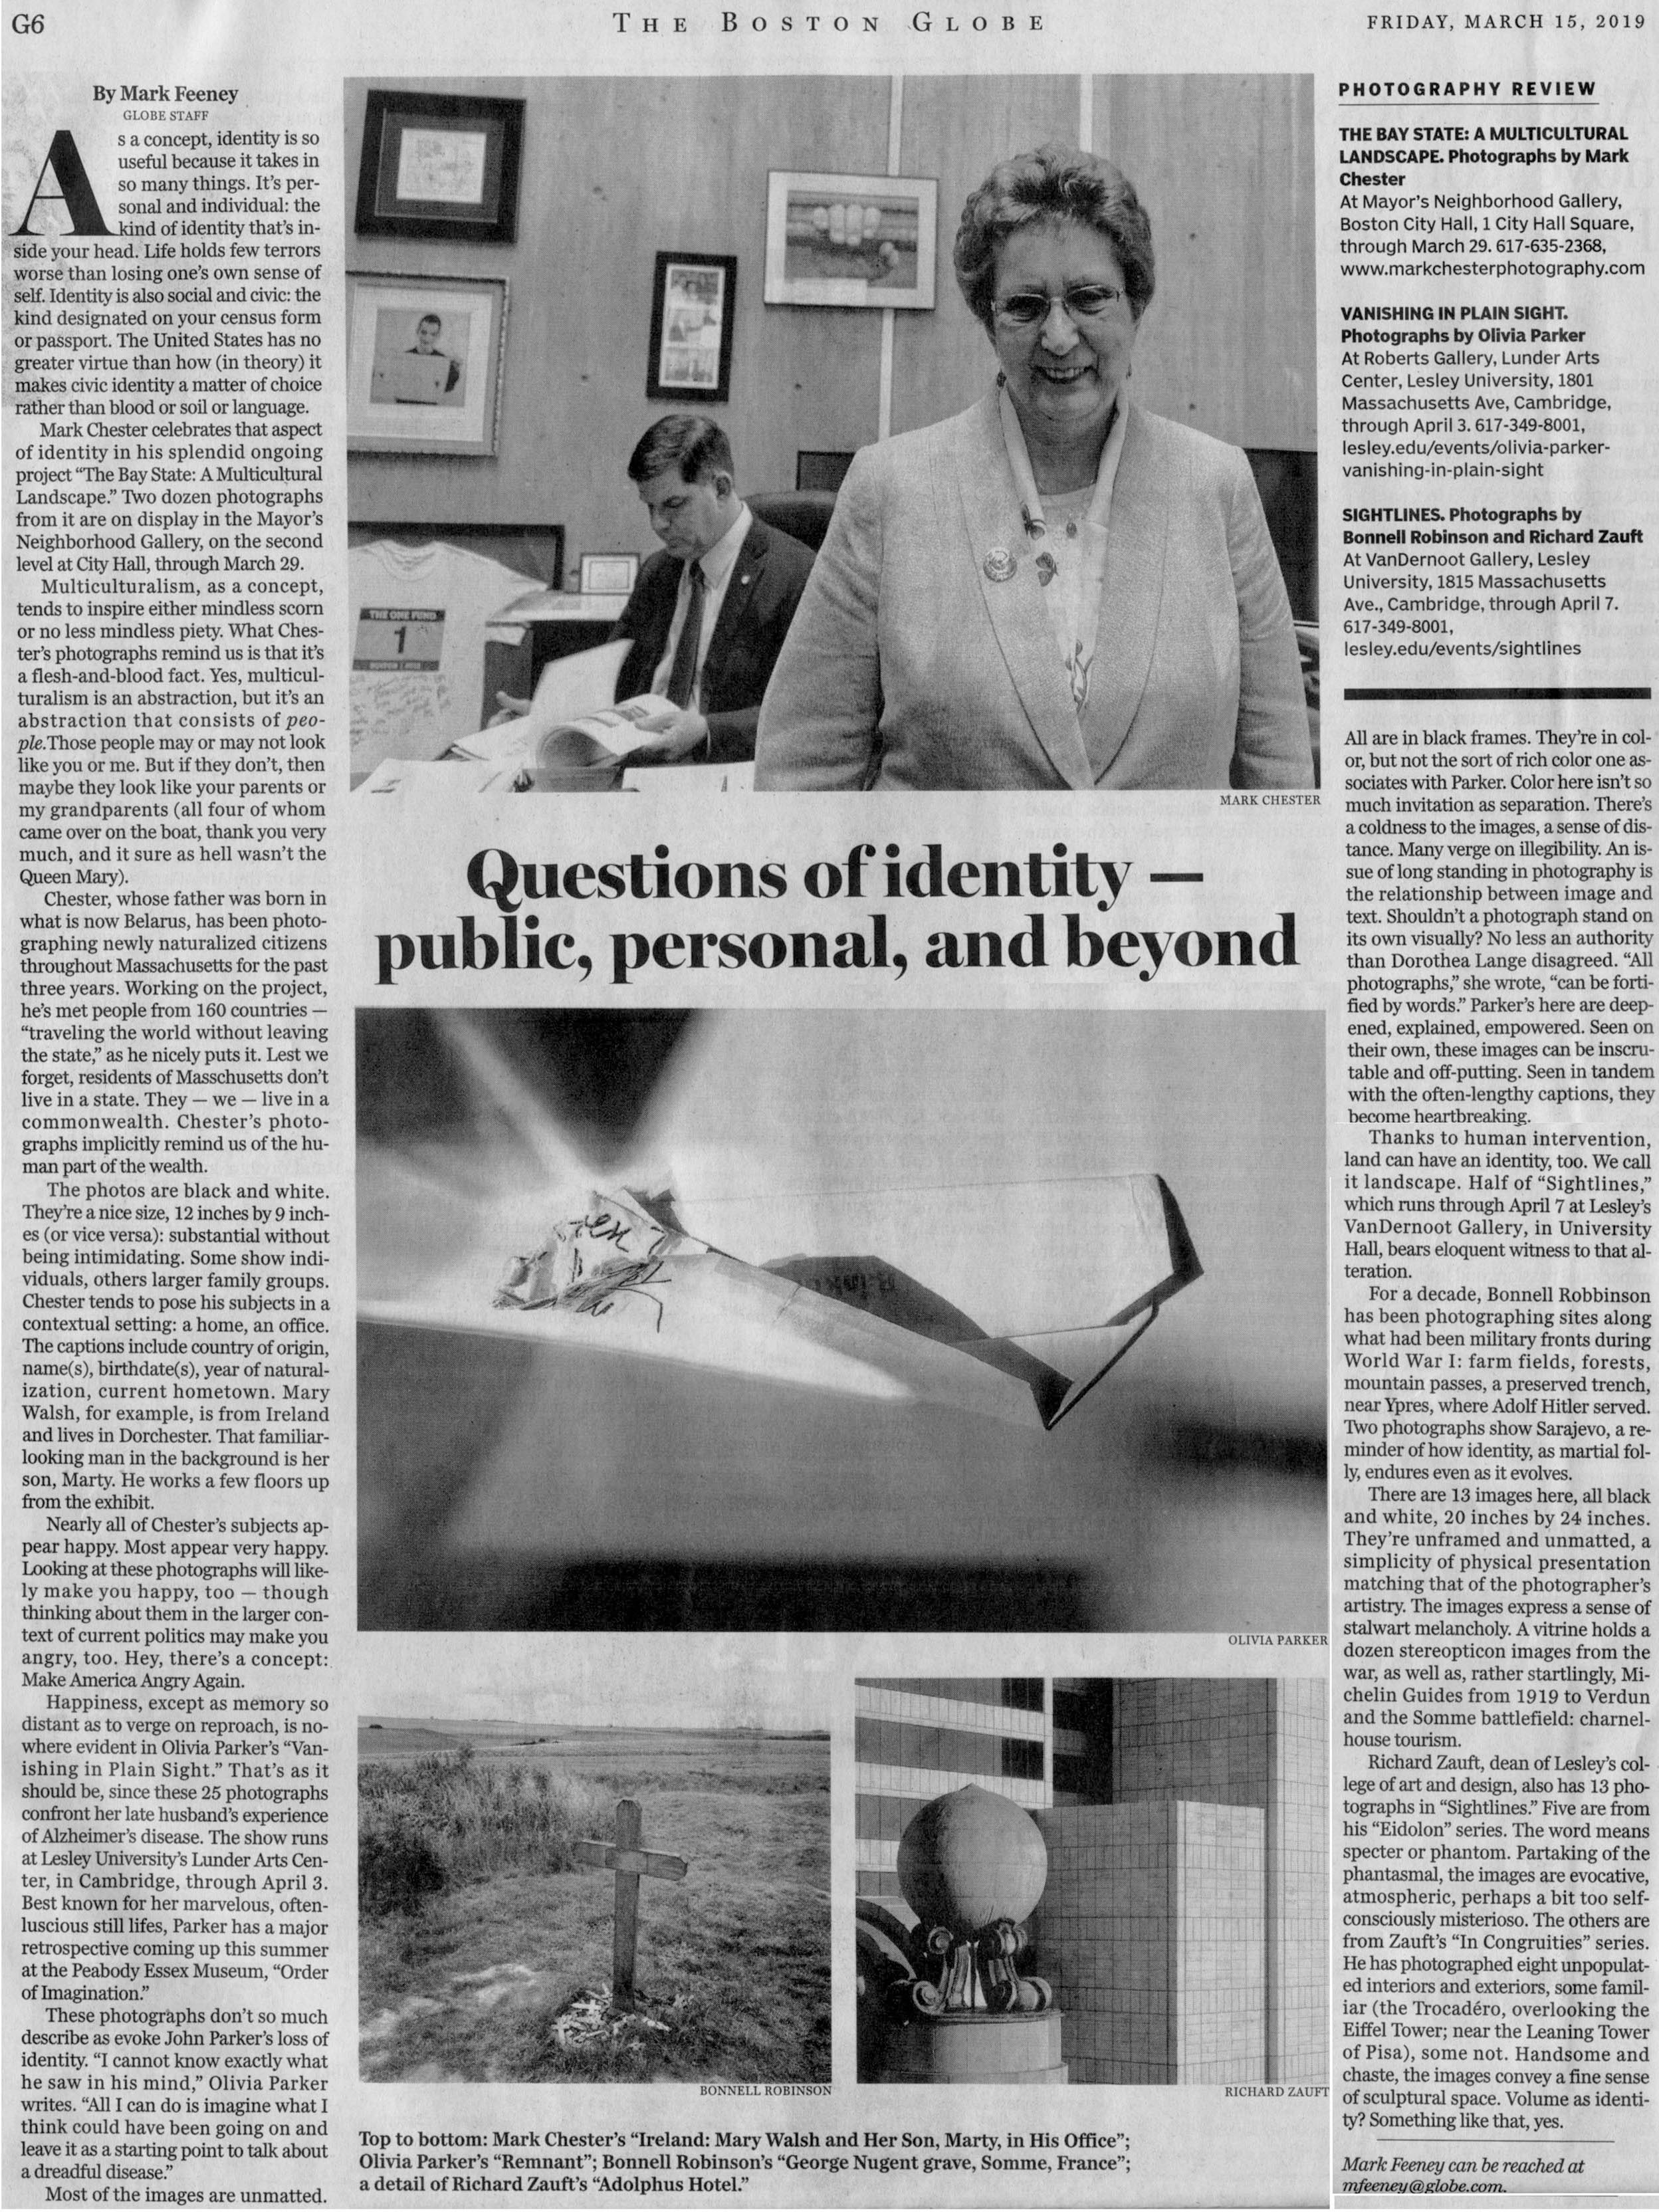 "Boston Globe  Art: PHOTOGRAPHY REVIEW  Questions of identity — public, personal, and beyond By    Mark Feeney     GLOBE STAFF  MARCH 14, 2019. Photograph:  Mark Chester's ""Ireland: Mary Walsh and Her Son, Marty, in His Office"""